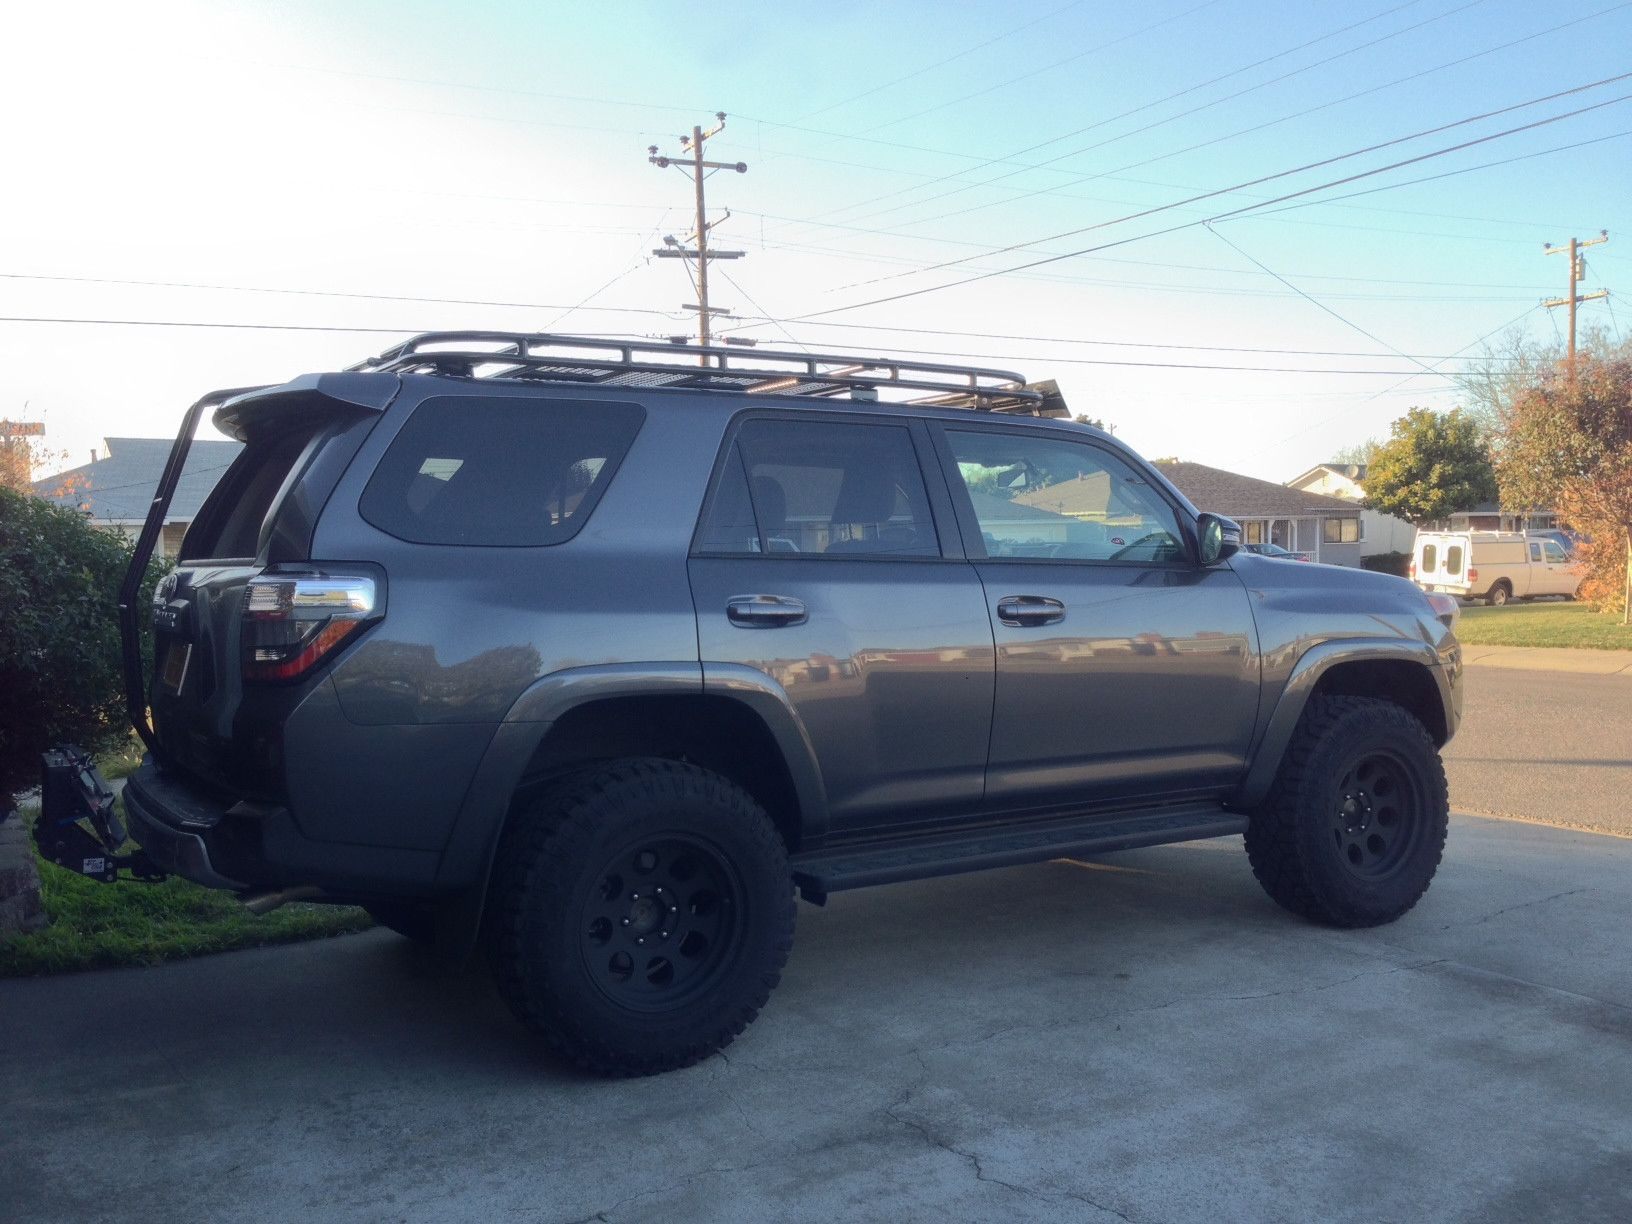 FS 5th Gen. Full Length Roof Racks by drabbits - Page 19 ...